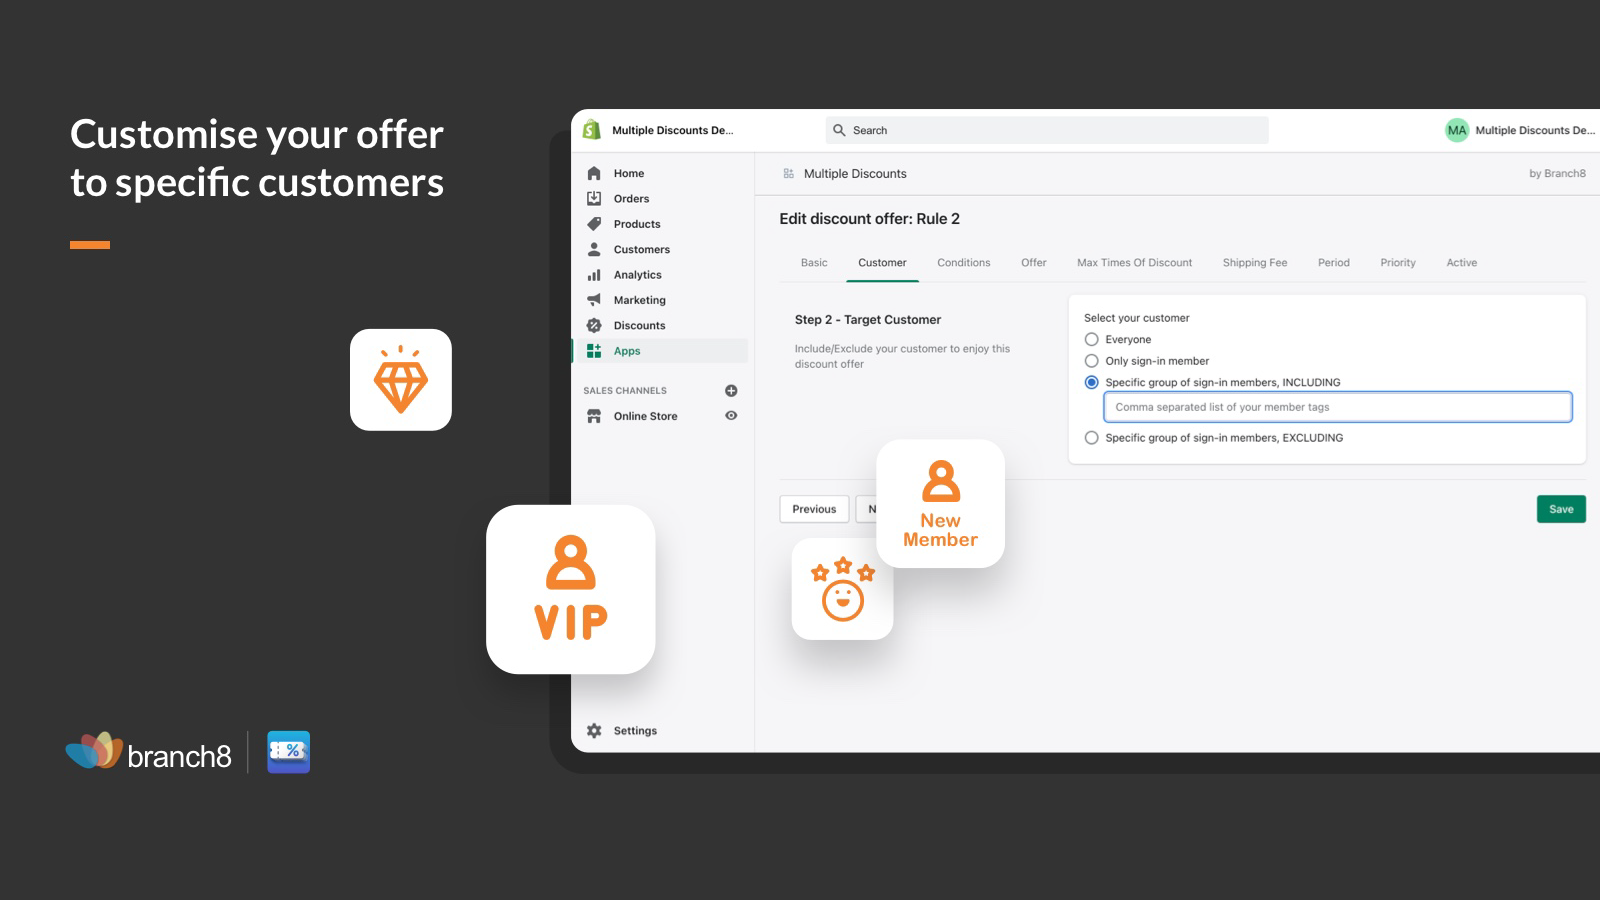 Customise your offer to specific customers